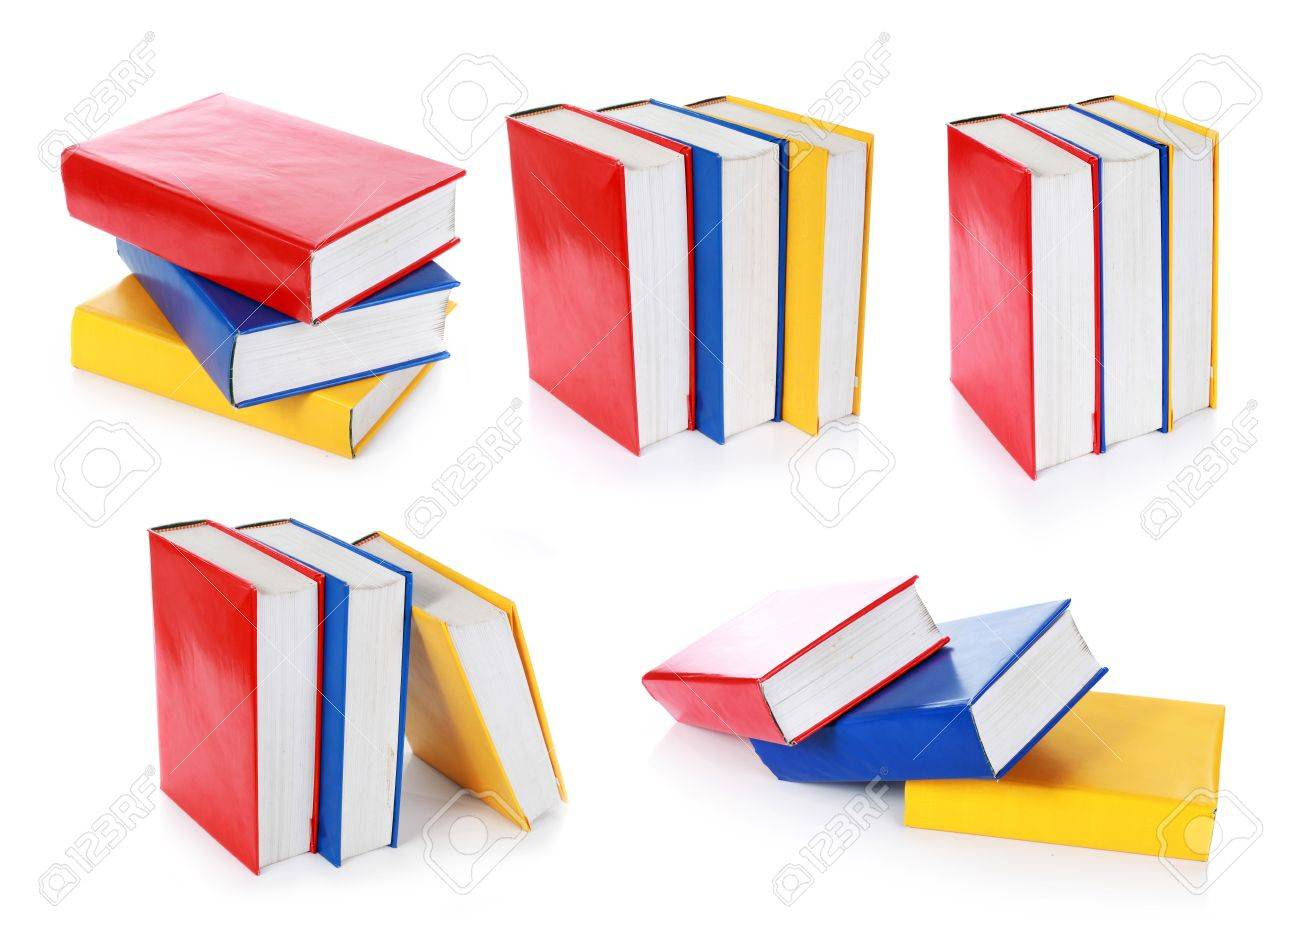 collection of colorful book formation. isolated on white background Stock Photo - 10313940